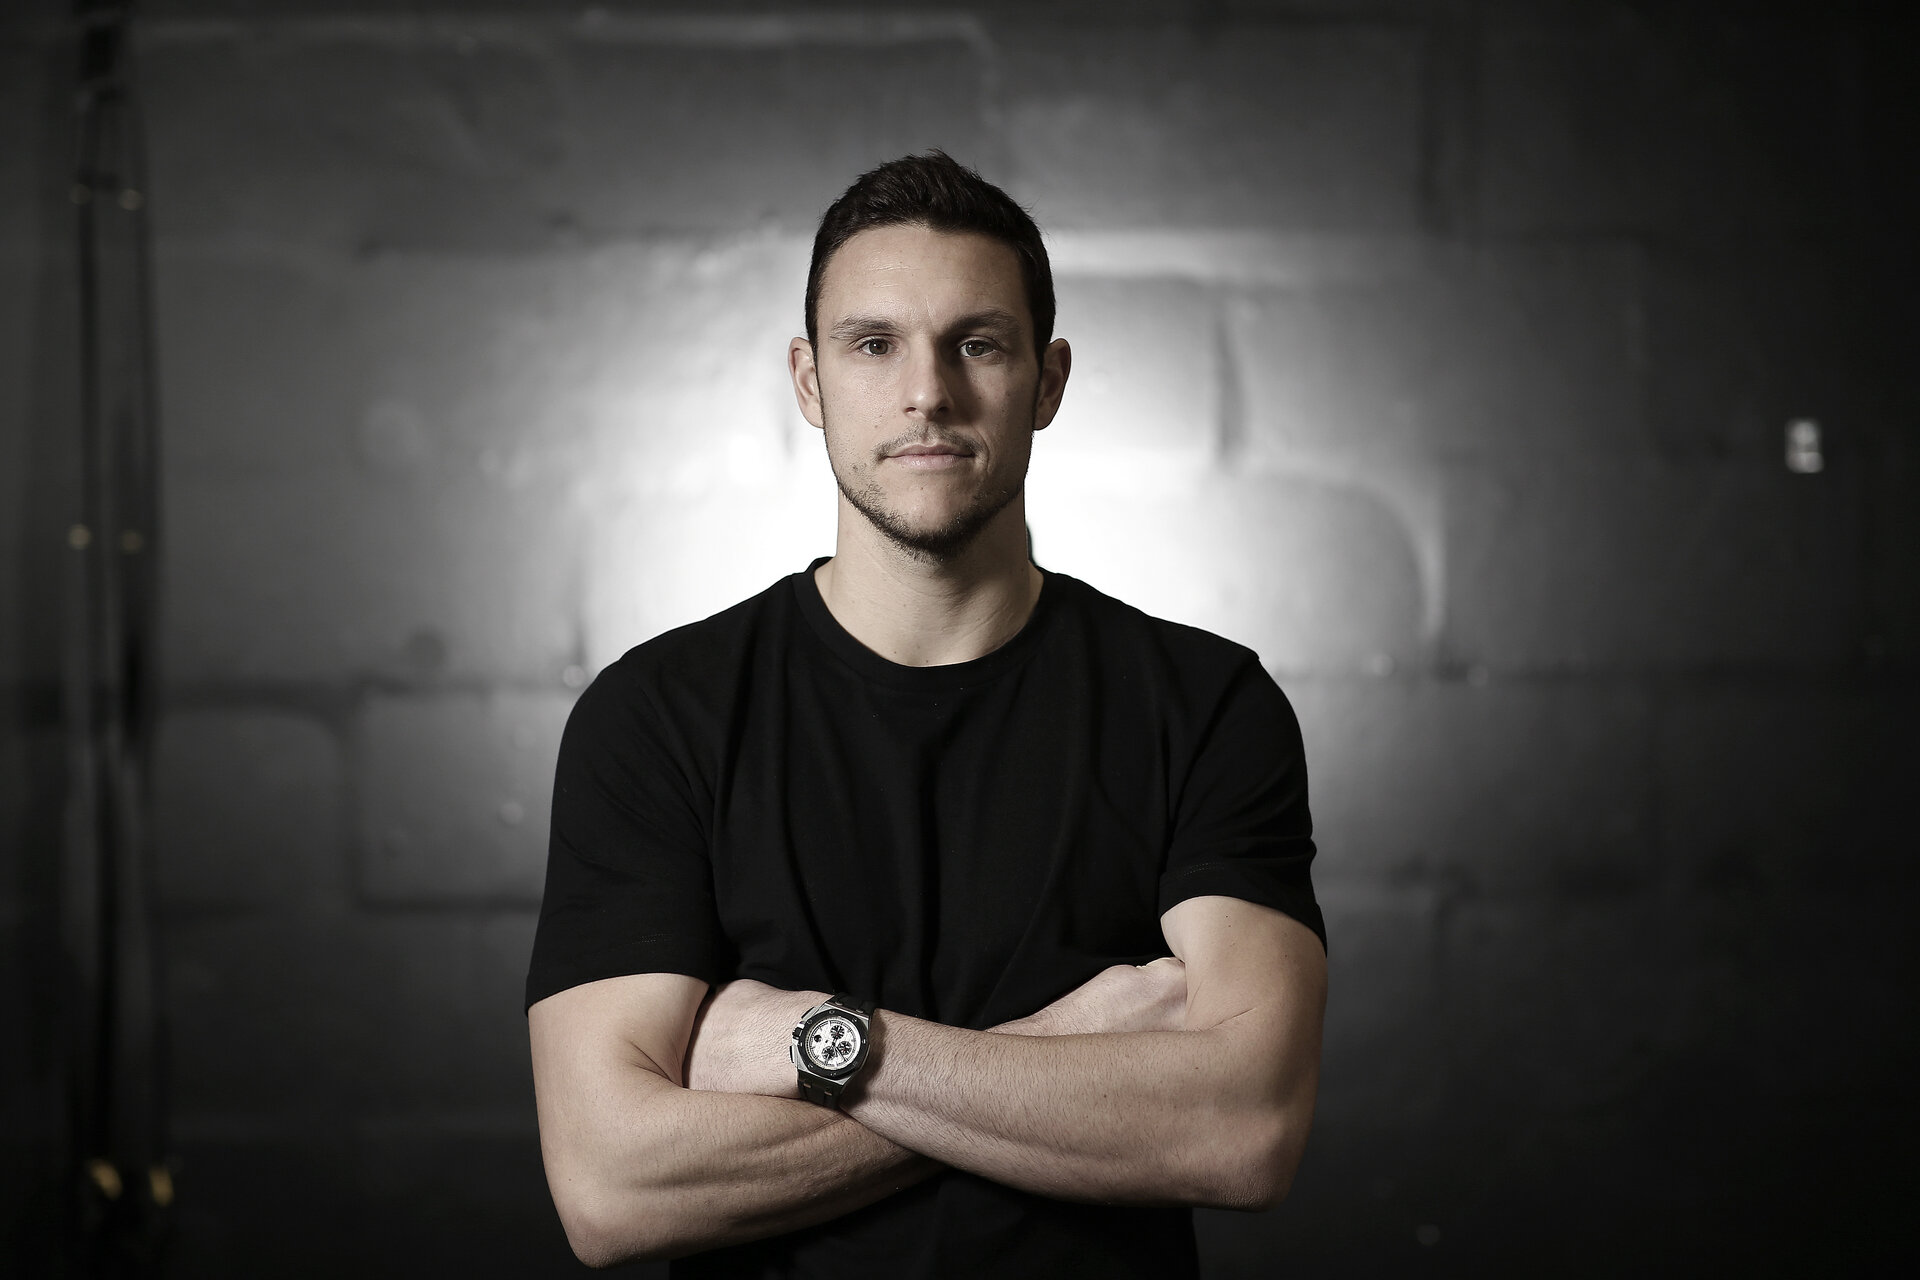 SOUTHAMPTON, ENGLAND - DECEMBER 03: Southampton goalkeeper Alex McCarthy pictured for Southampton FC's match day magazine, at the Staplewood Campus on December 03, 2019 in Southampton, England. (Photo by Matt Watson/Southampton FC via Getty Images)